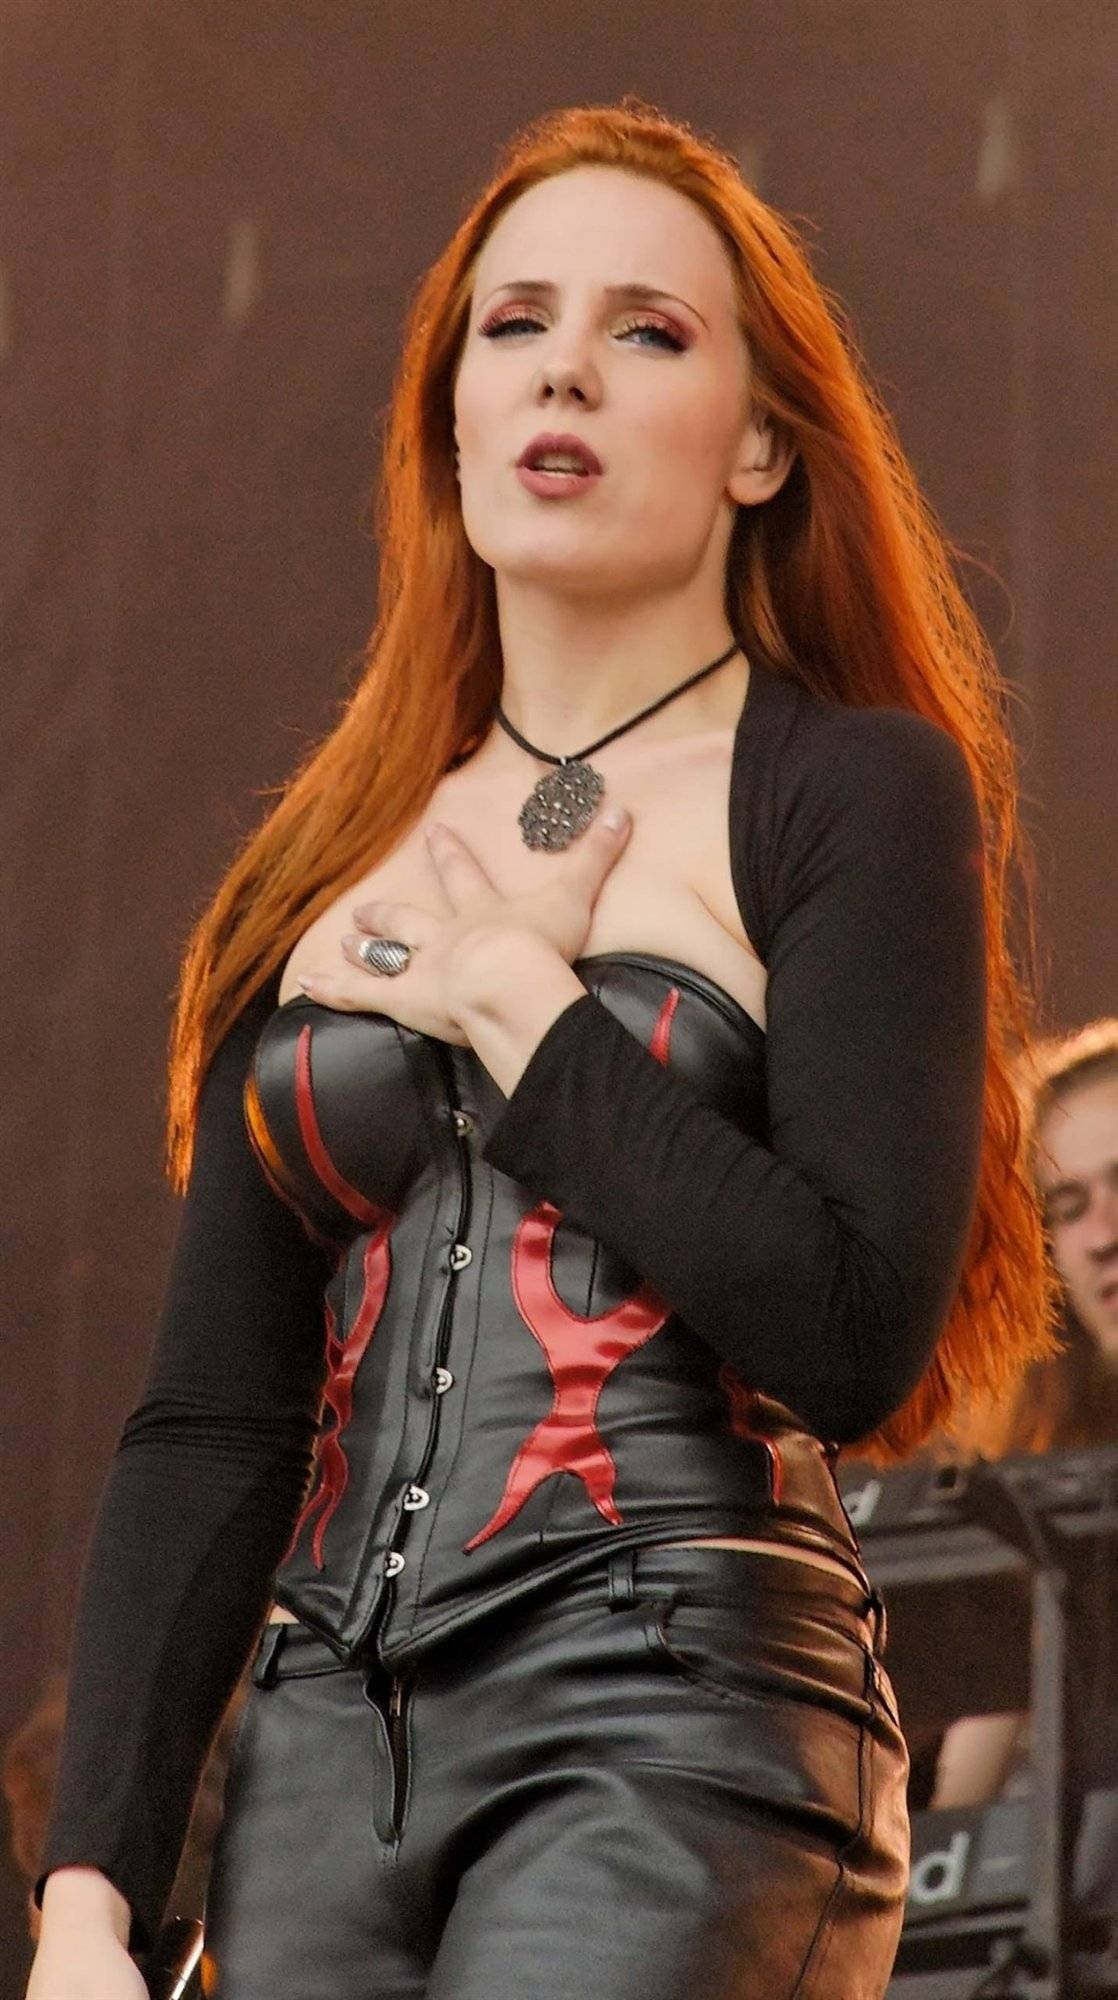 Amazing Simone Simons Pictures & Backgrounds